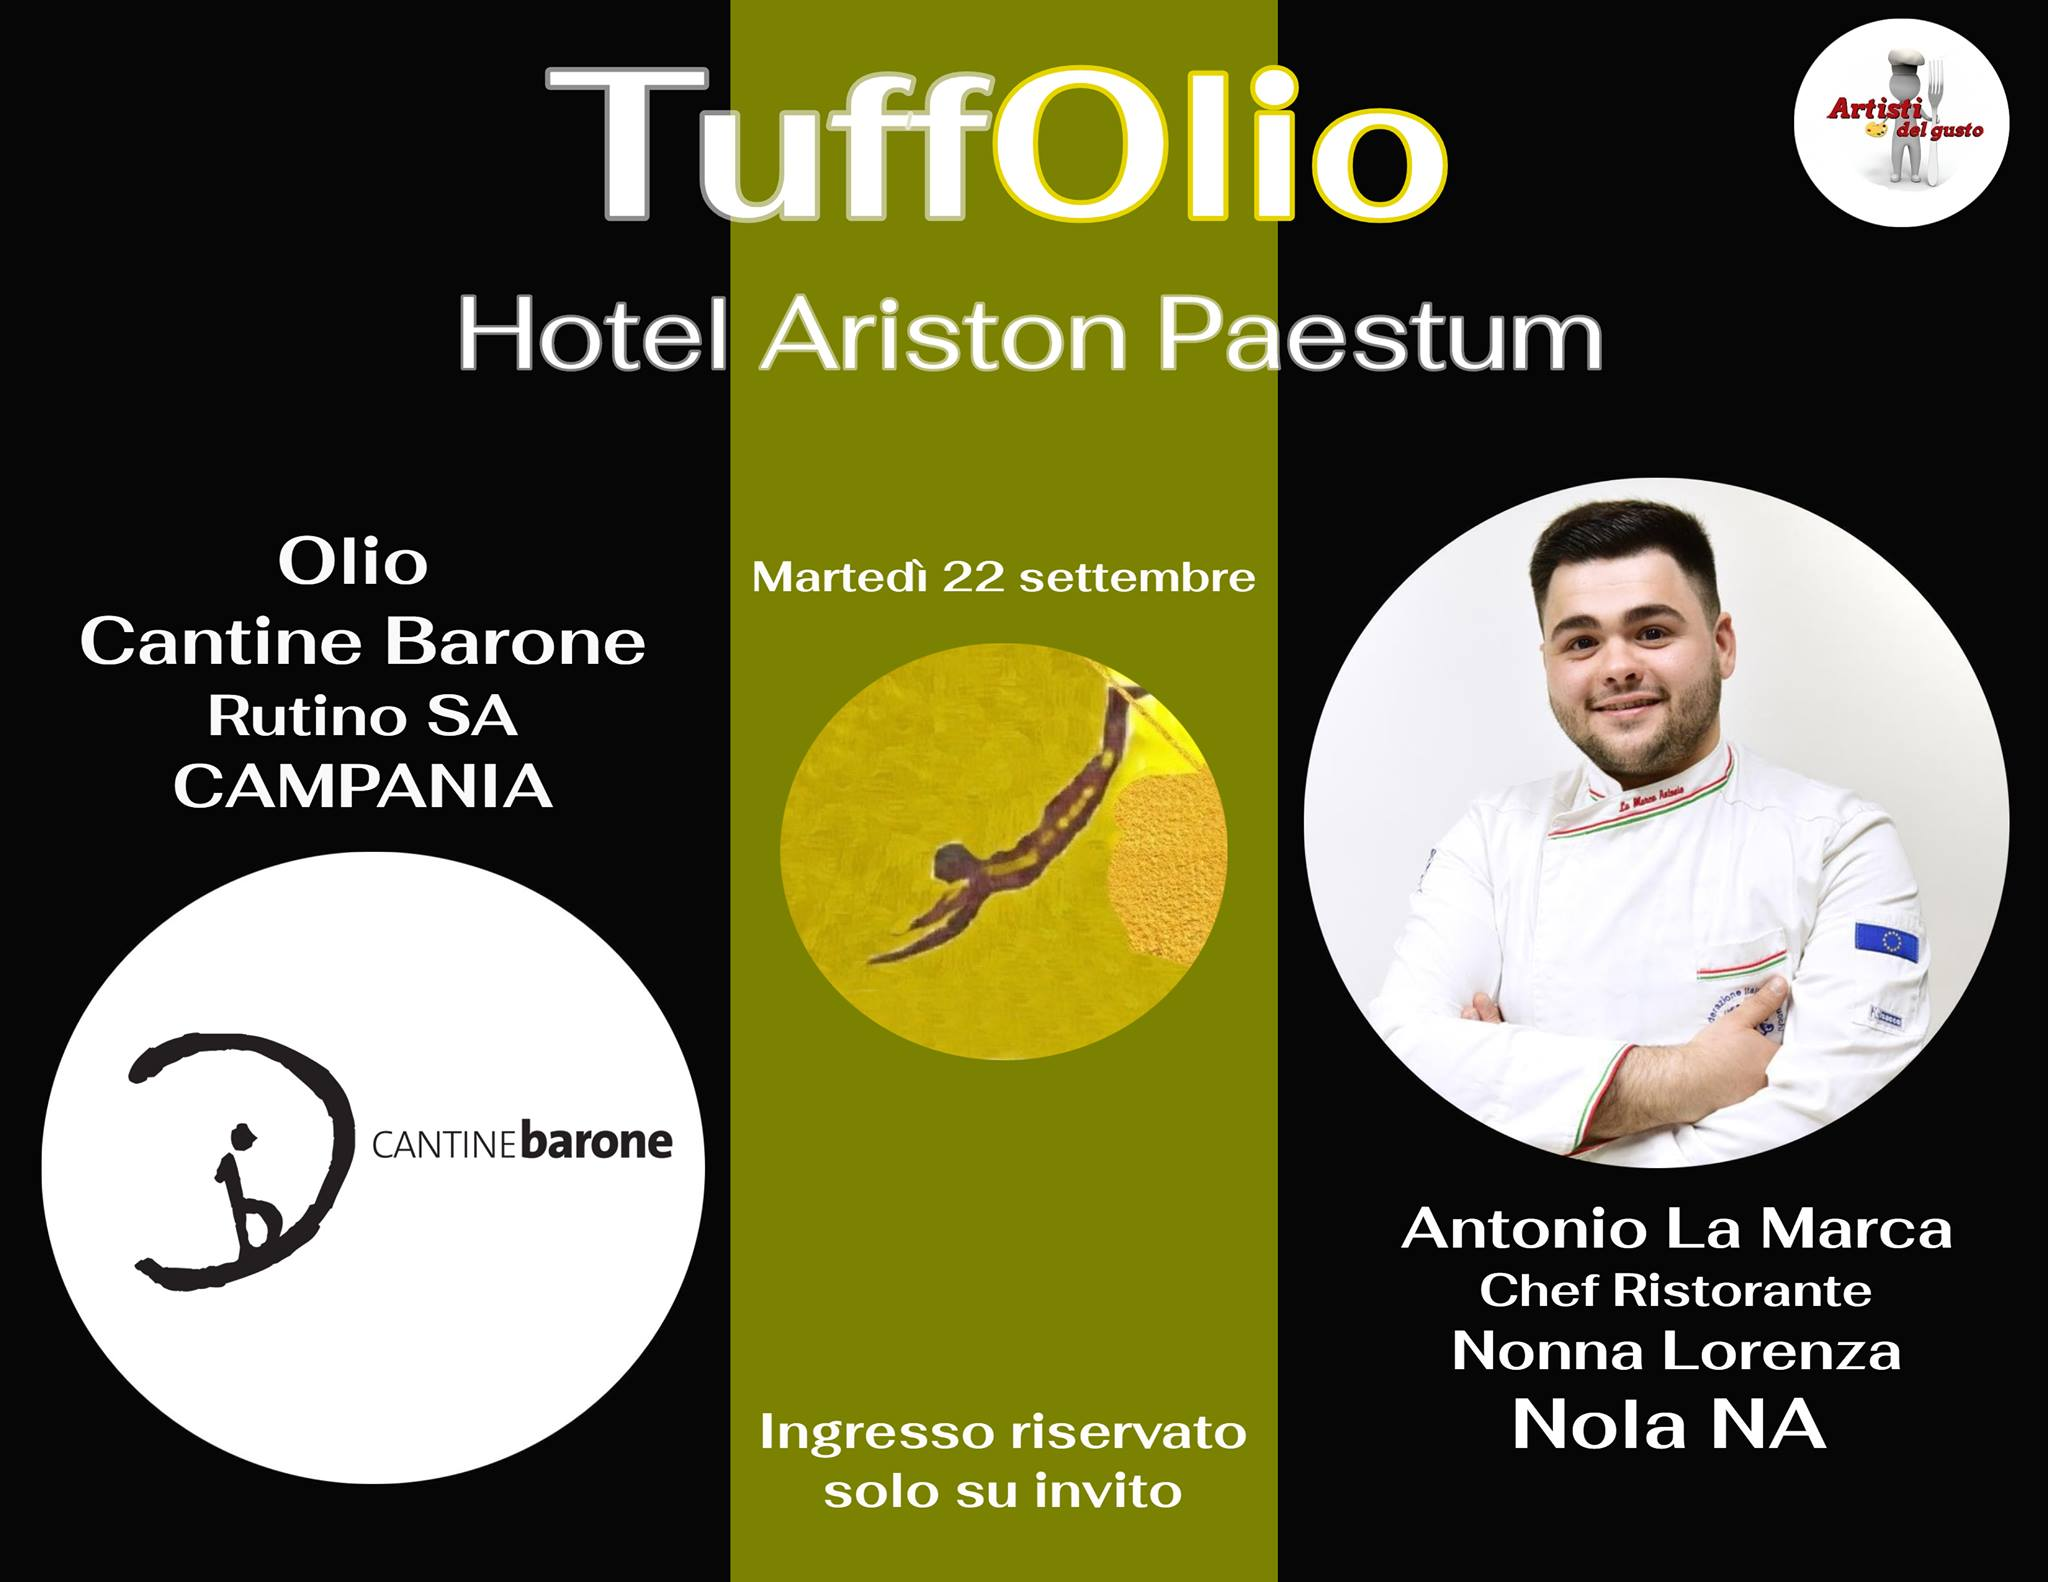 Tuffolio 2020 Hotel Ariston Paestum